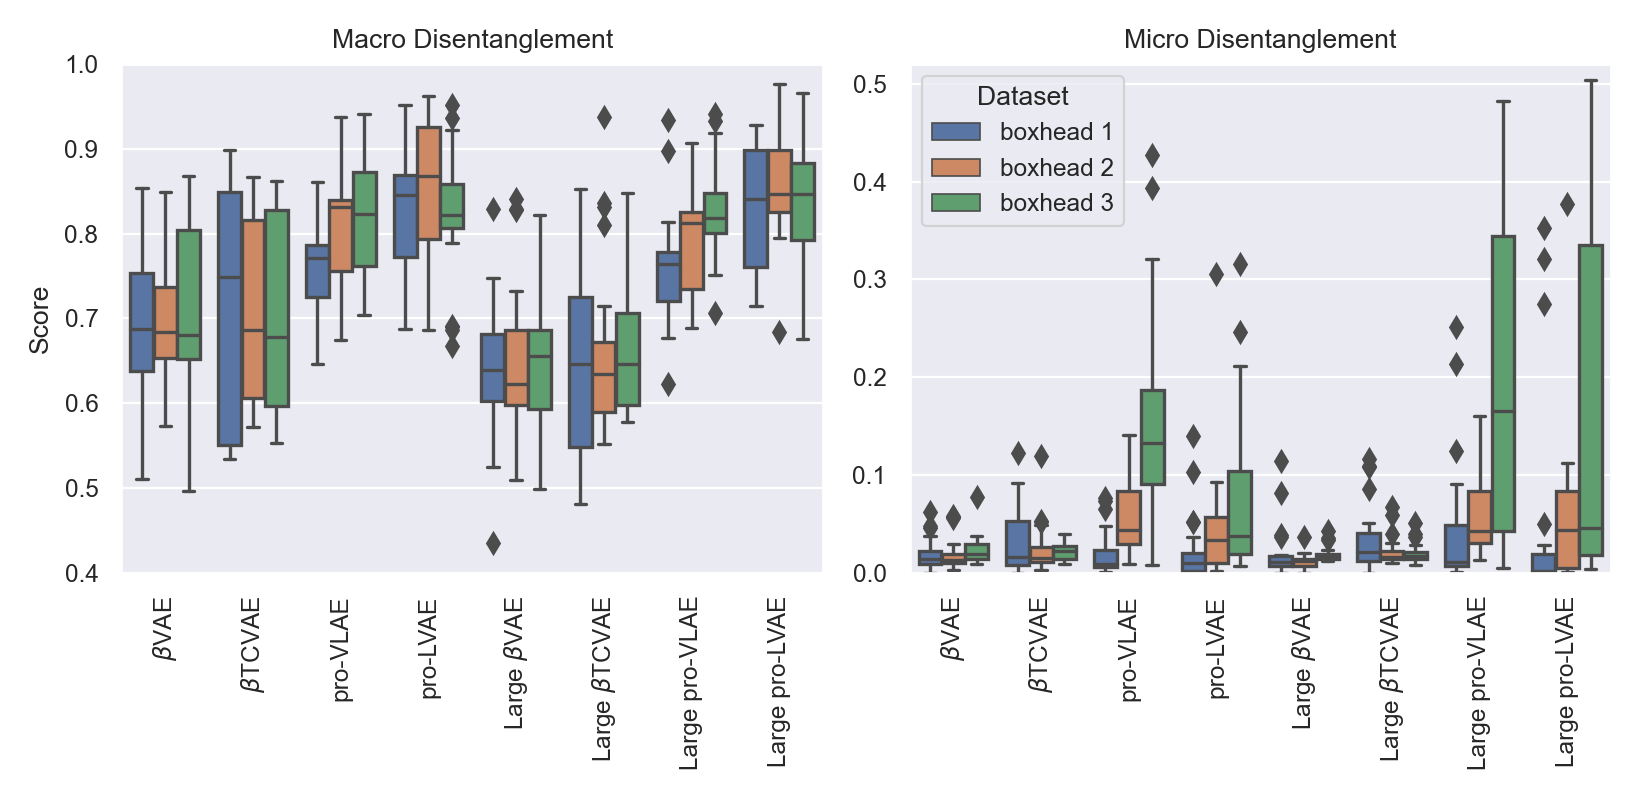 Macro-level and micro-level disentanglement scores for all trained models across all three Boxhead variants. Each box is an aggregation across all